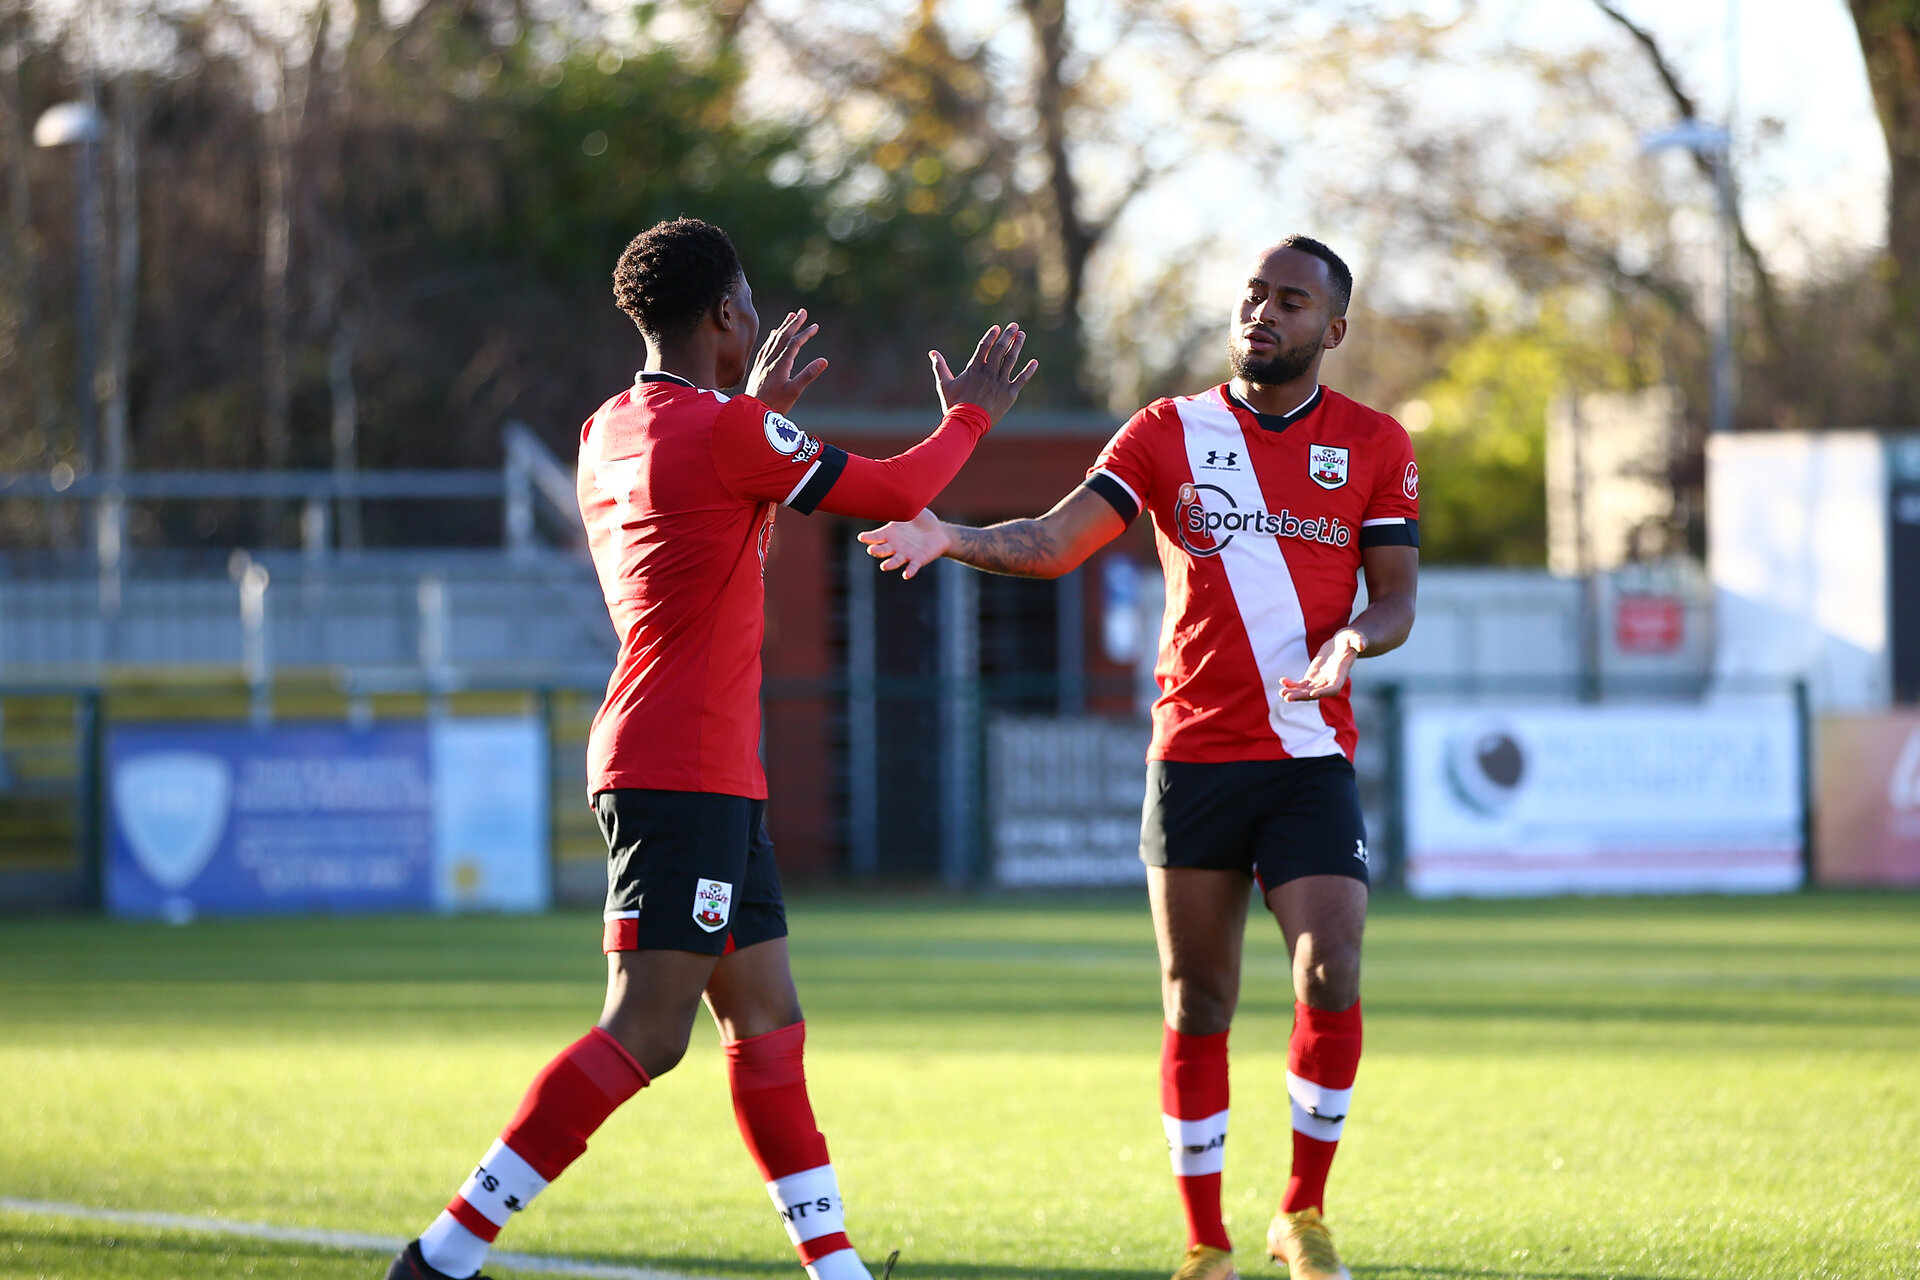 SOUTHAMPTON, ENGLAND - DECEMBER 12: Tyreke Johnson(R) congratulating Nathan Tella (L) on scoring during the Premier League 2 match between Southampton B Team and Leicester City at Snows Stadium on December 12, 2020 in Southampton, England. (Photo by Isabelle Field/Southampton FC via Getty Images)